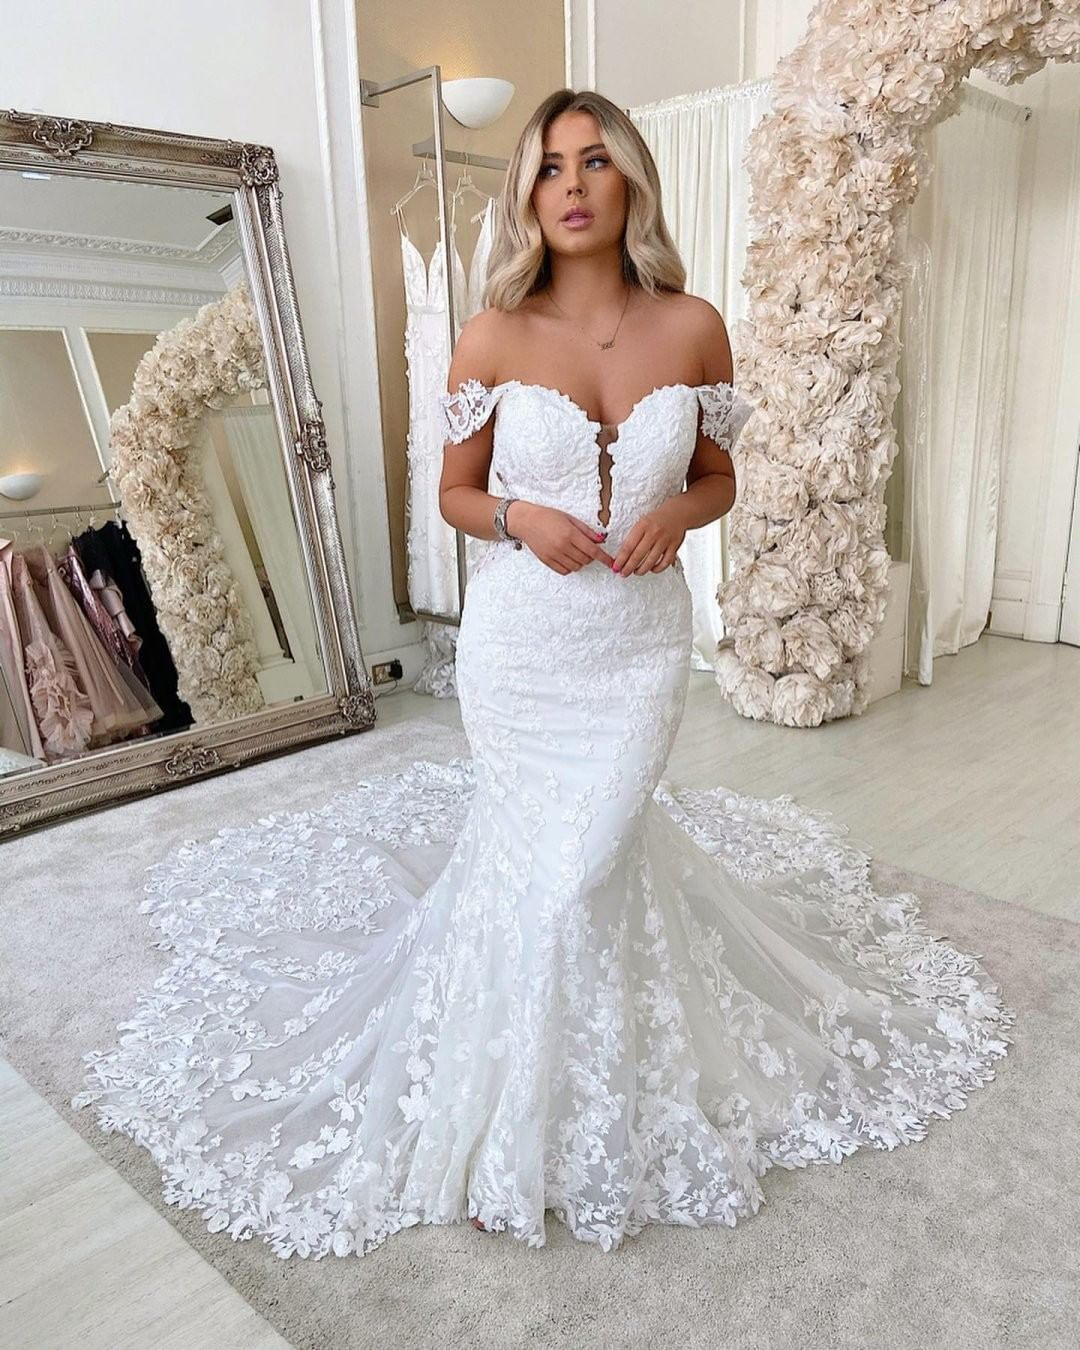 Martina Liana Bridal Designs On Instagram Style 1103 Is The Pinnacle Of Lush Garden I Backless Bridal Gowns Lace Mermaid Wedding Dress Applique Wedding Dress [ 1350 x 1080 Pixel ]